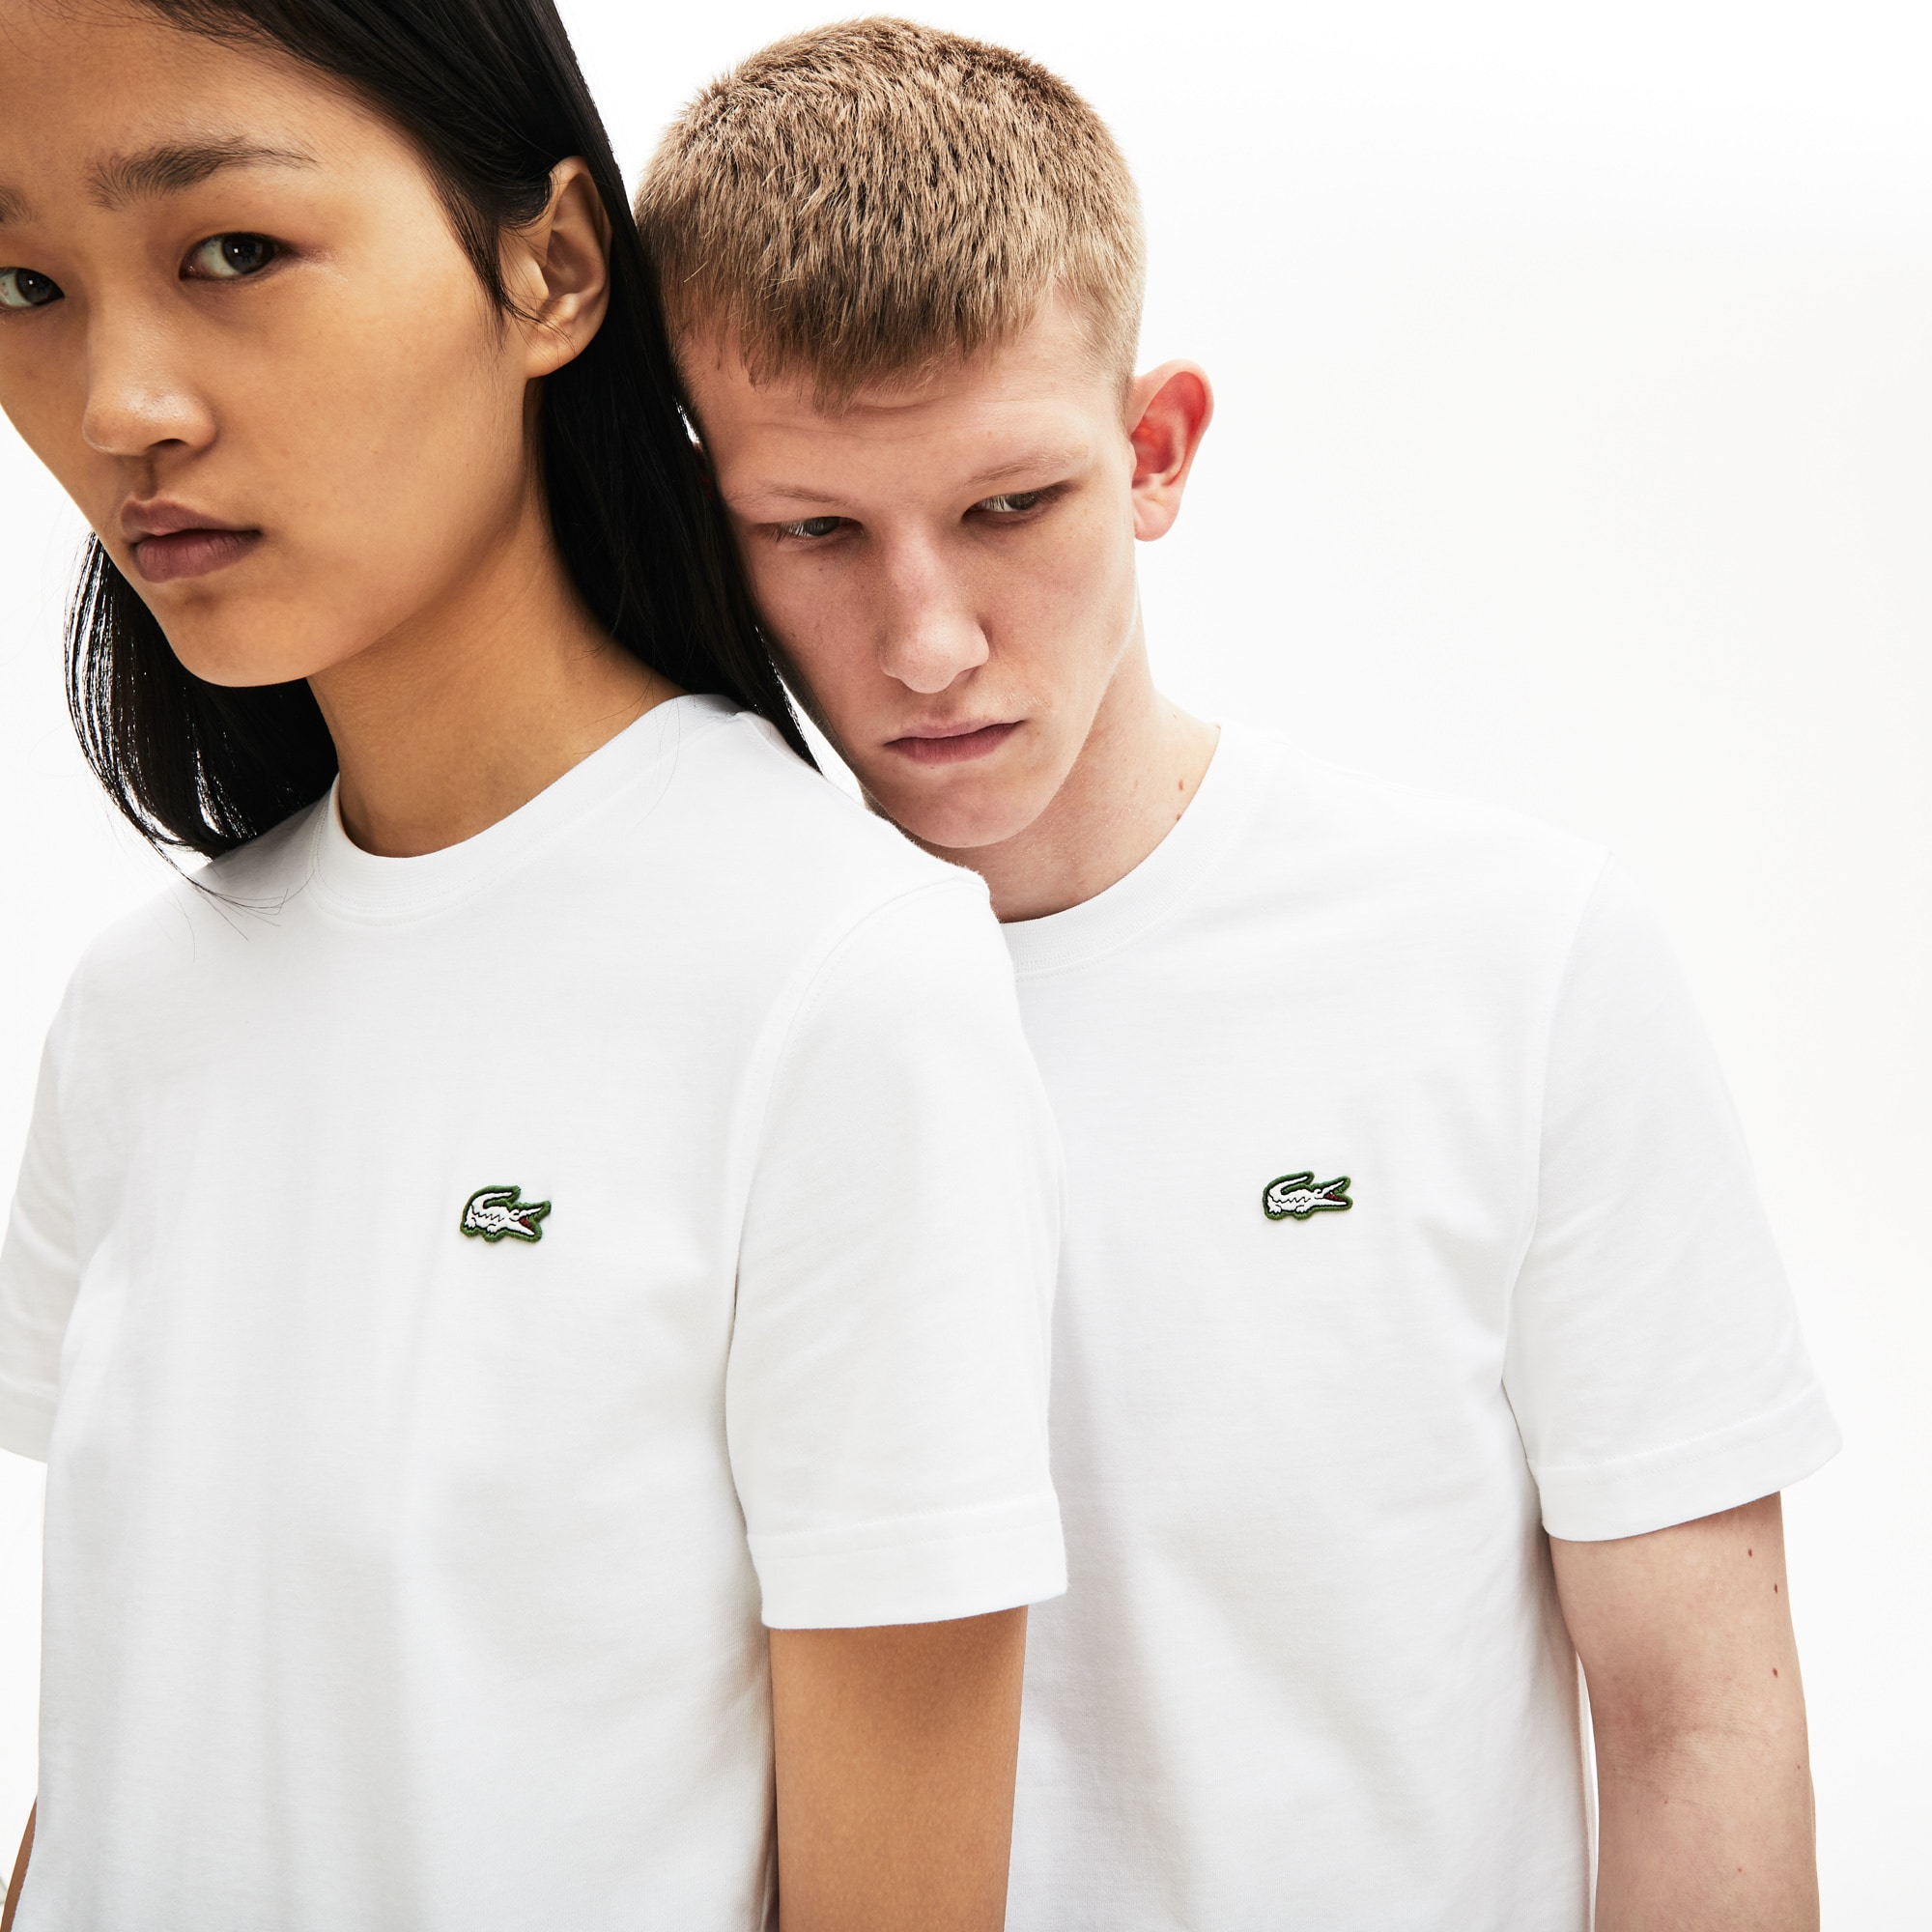 Unisex Lacoste LIVE Cotton T-shirt